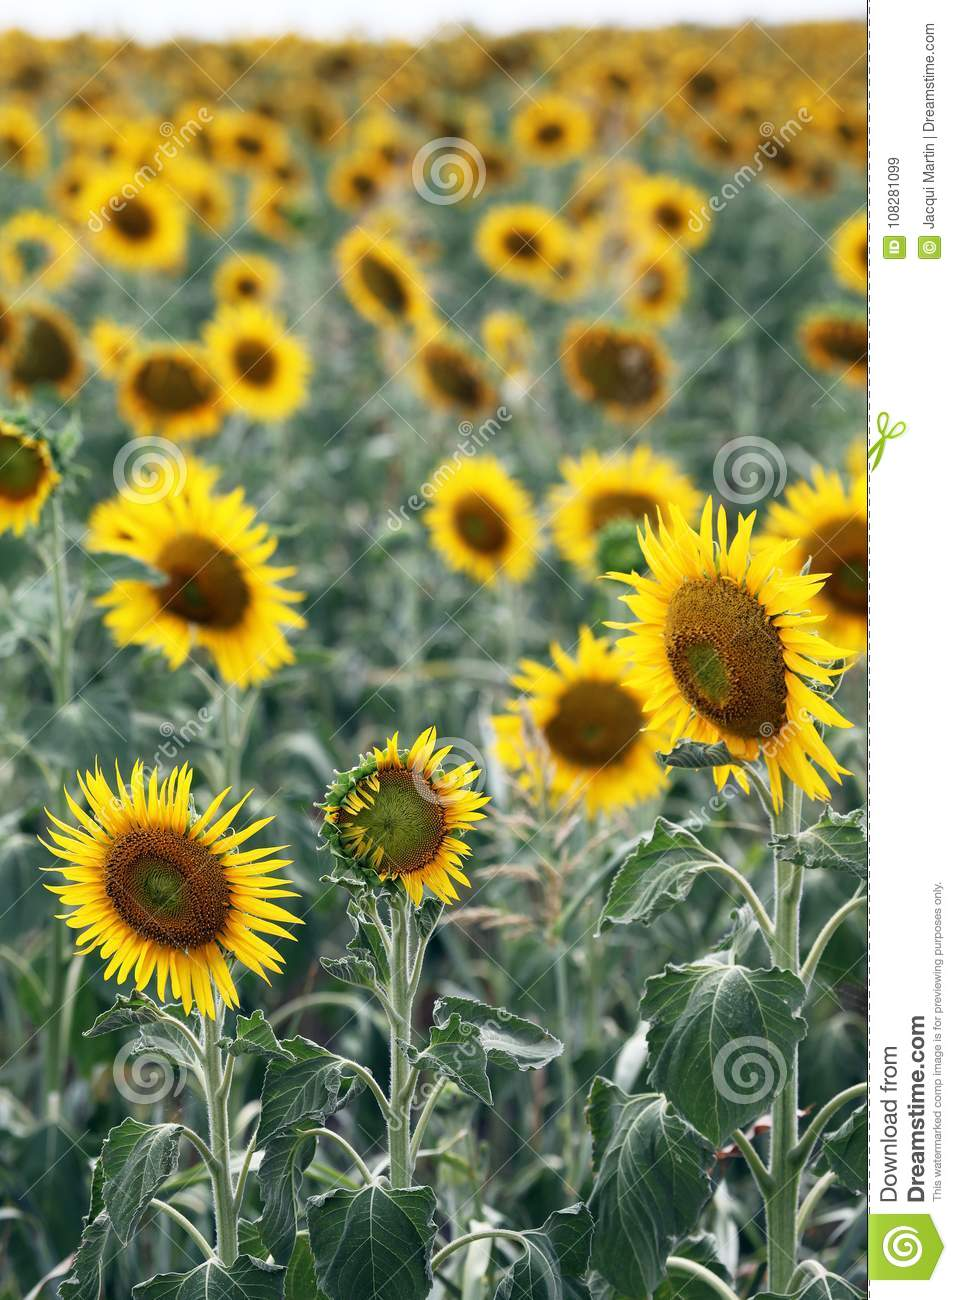 Beautiful Sunflowers In Field Stock Image Image Of Petals Insect